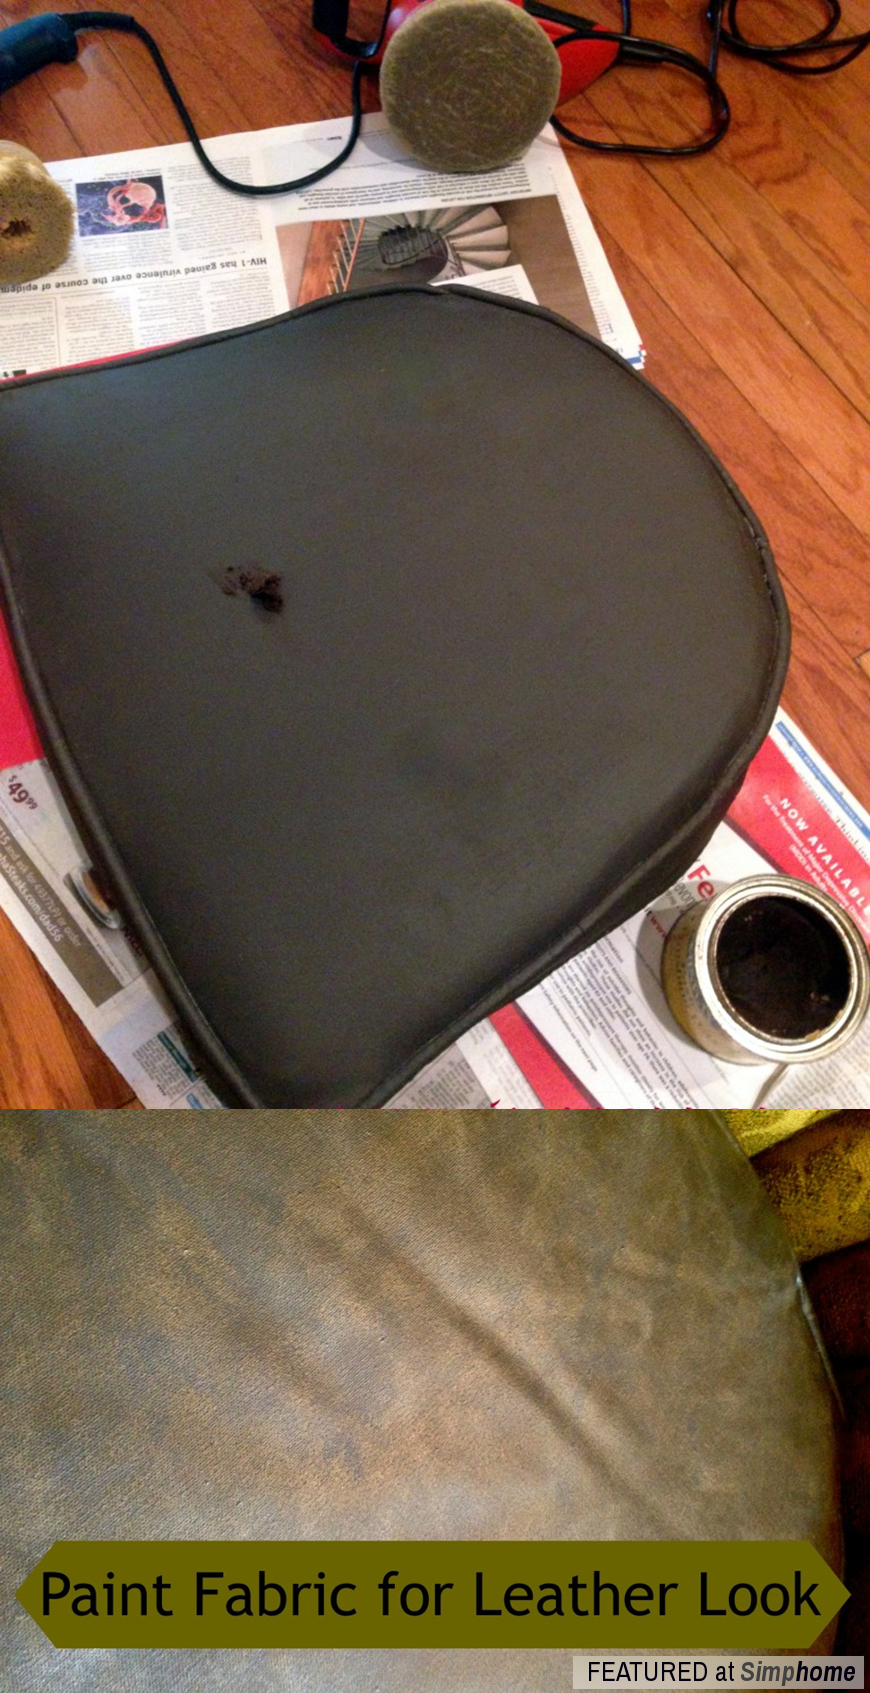 How to Paint Fabric to make it look like Leather via simphome Step 5